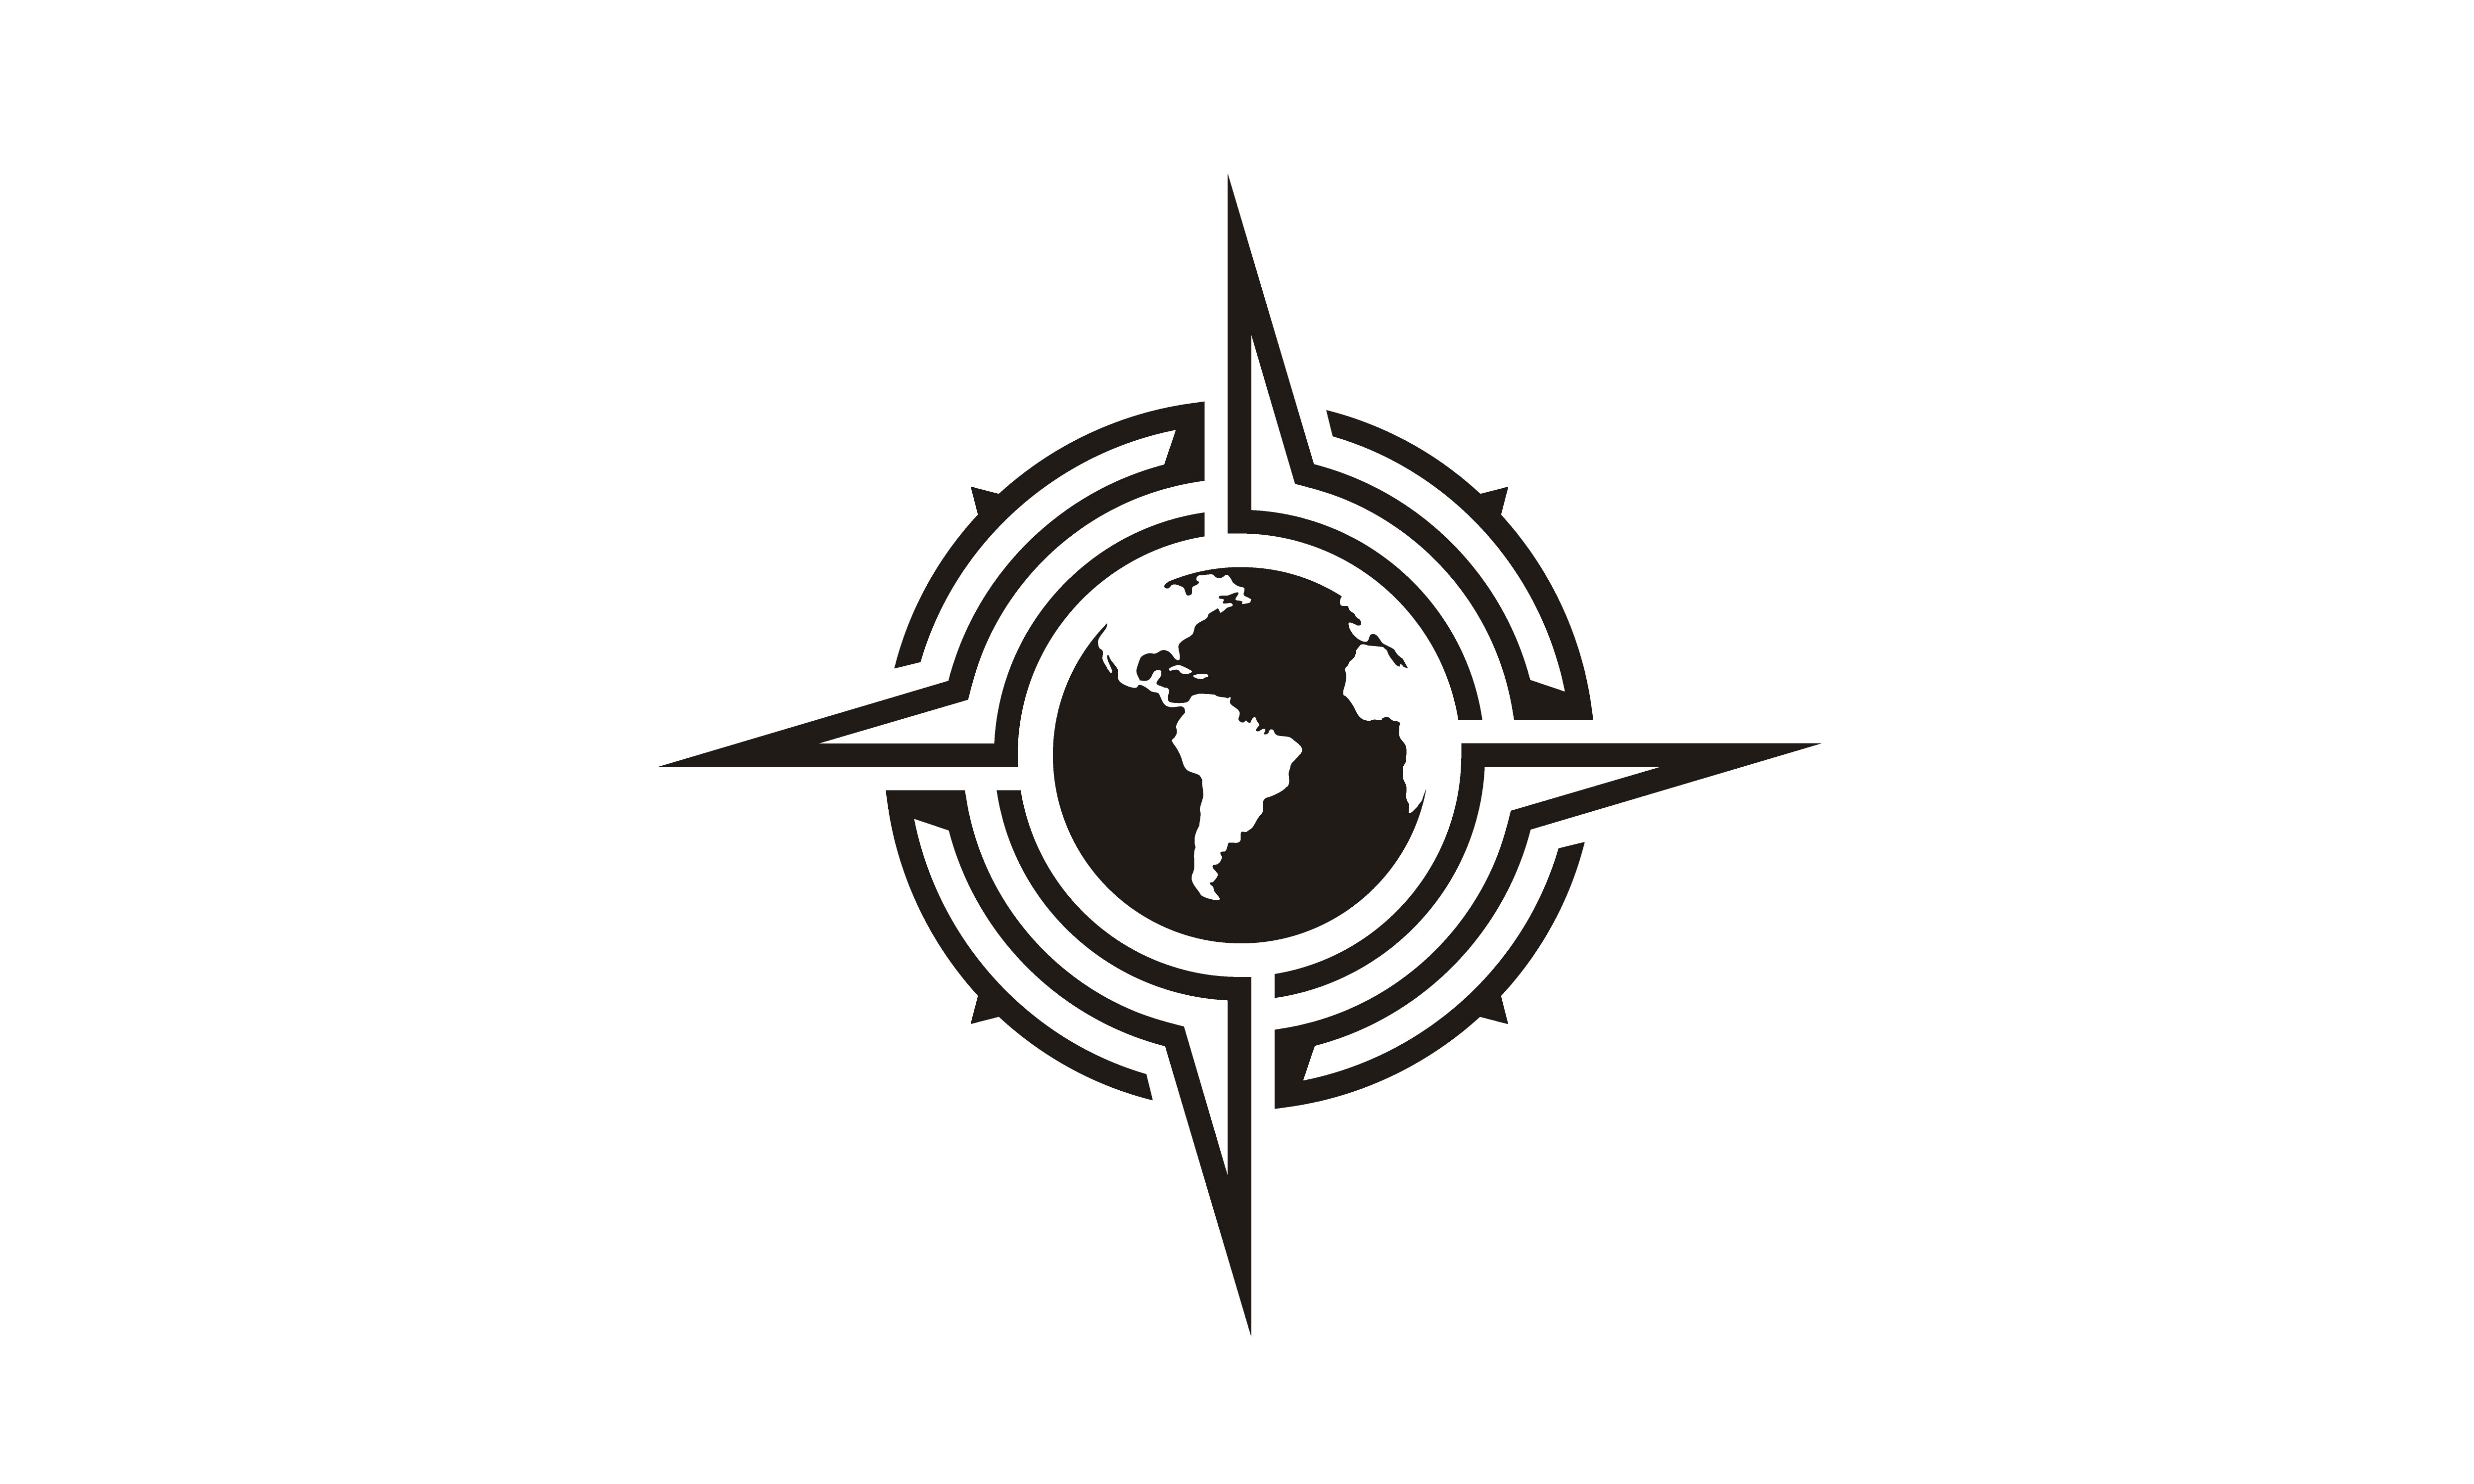 Download Free Globe Compass Cardinal Direction World Graphic By Enola99d for Cricut Explore, Silhouette and other cutting machines.